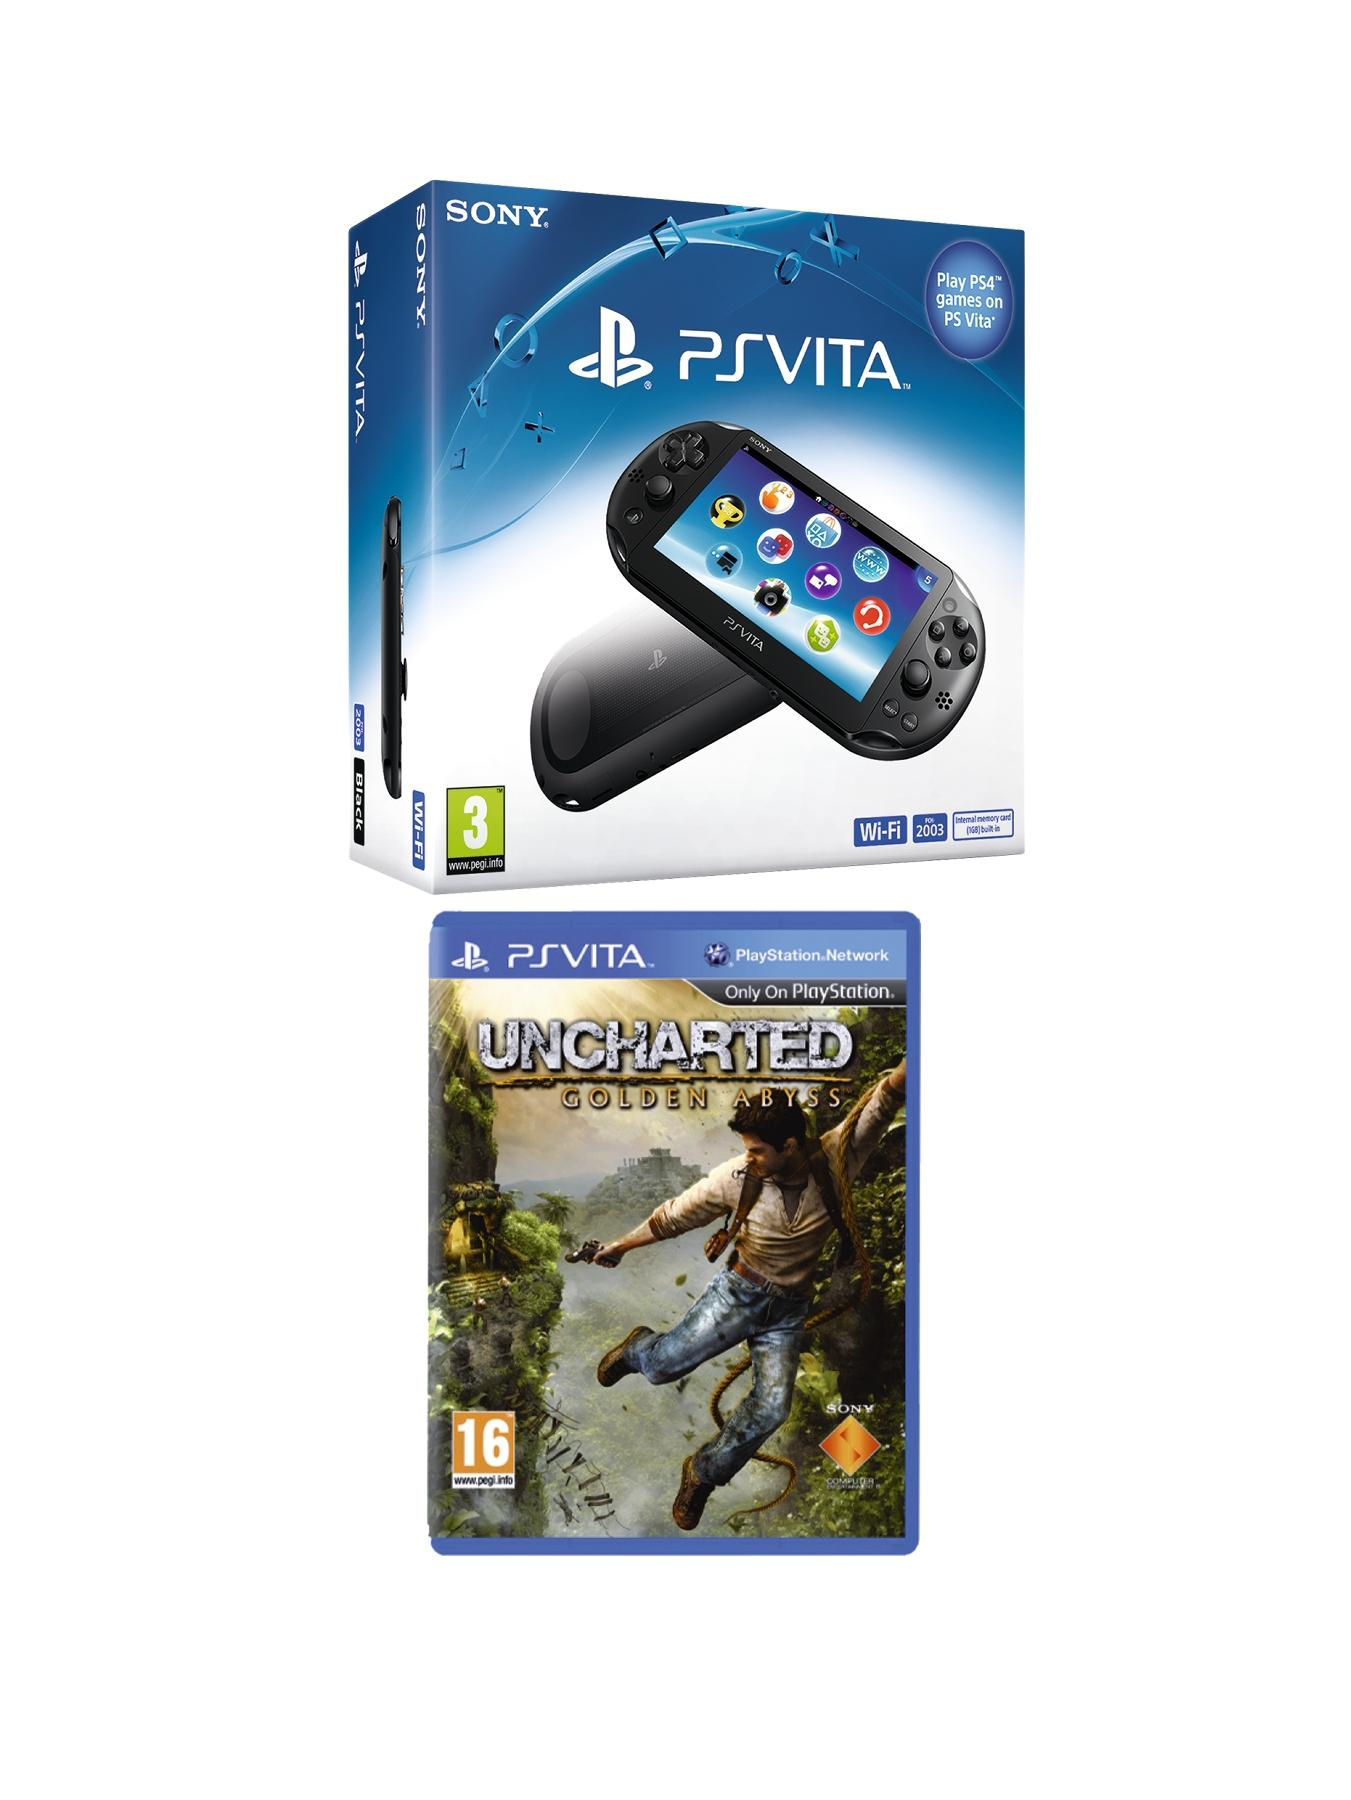 Slim Console with FREE Uncharted: Golden Abyss